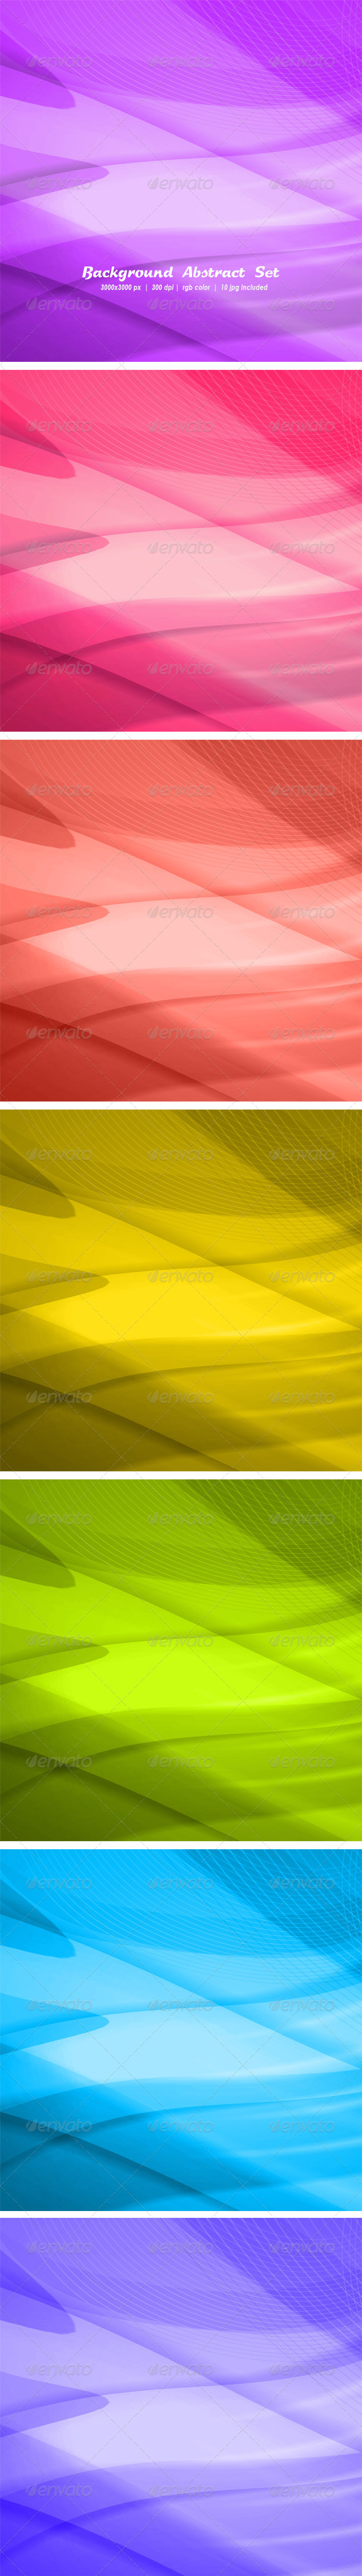 GraphicRiver Abstract Background 4894625